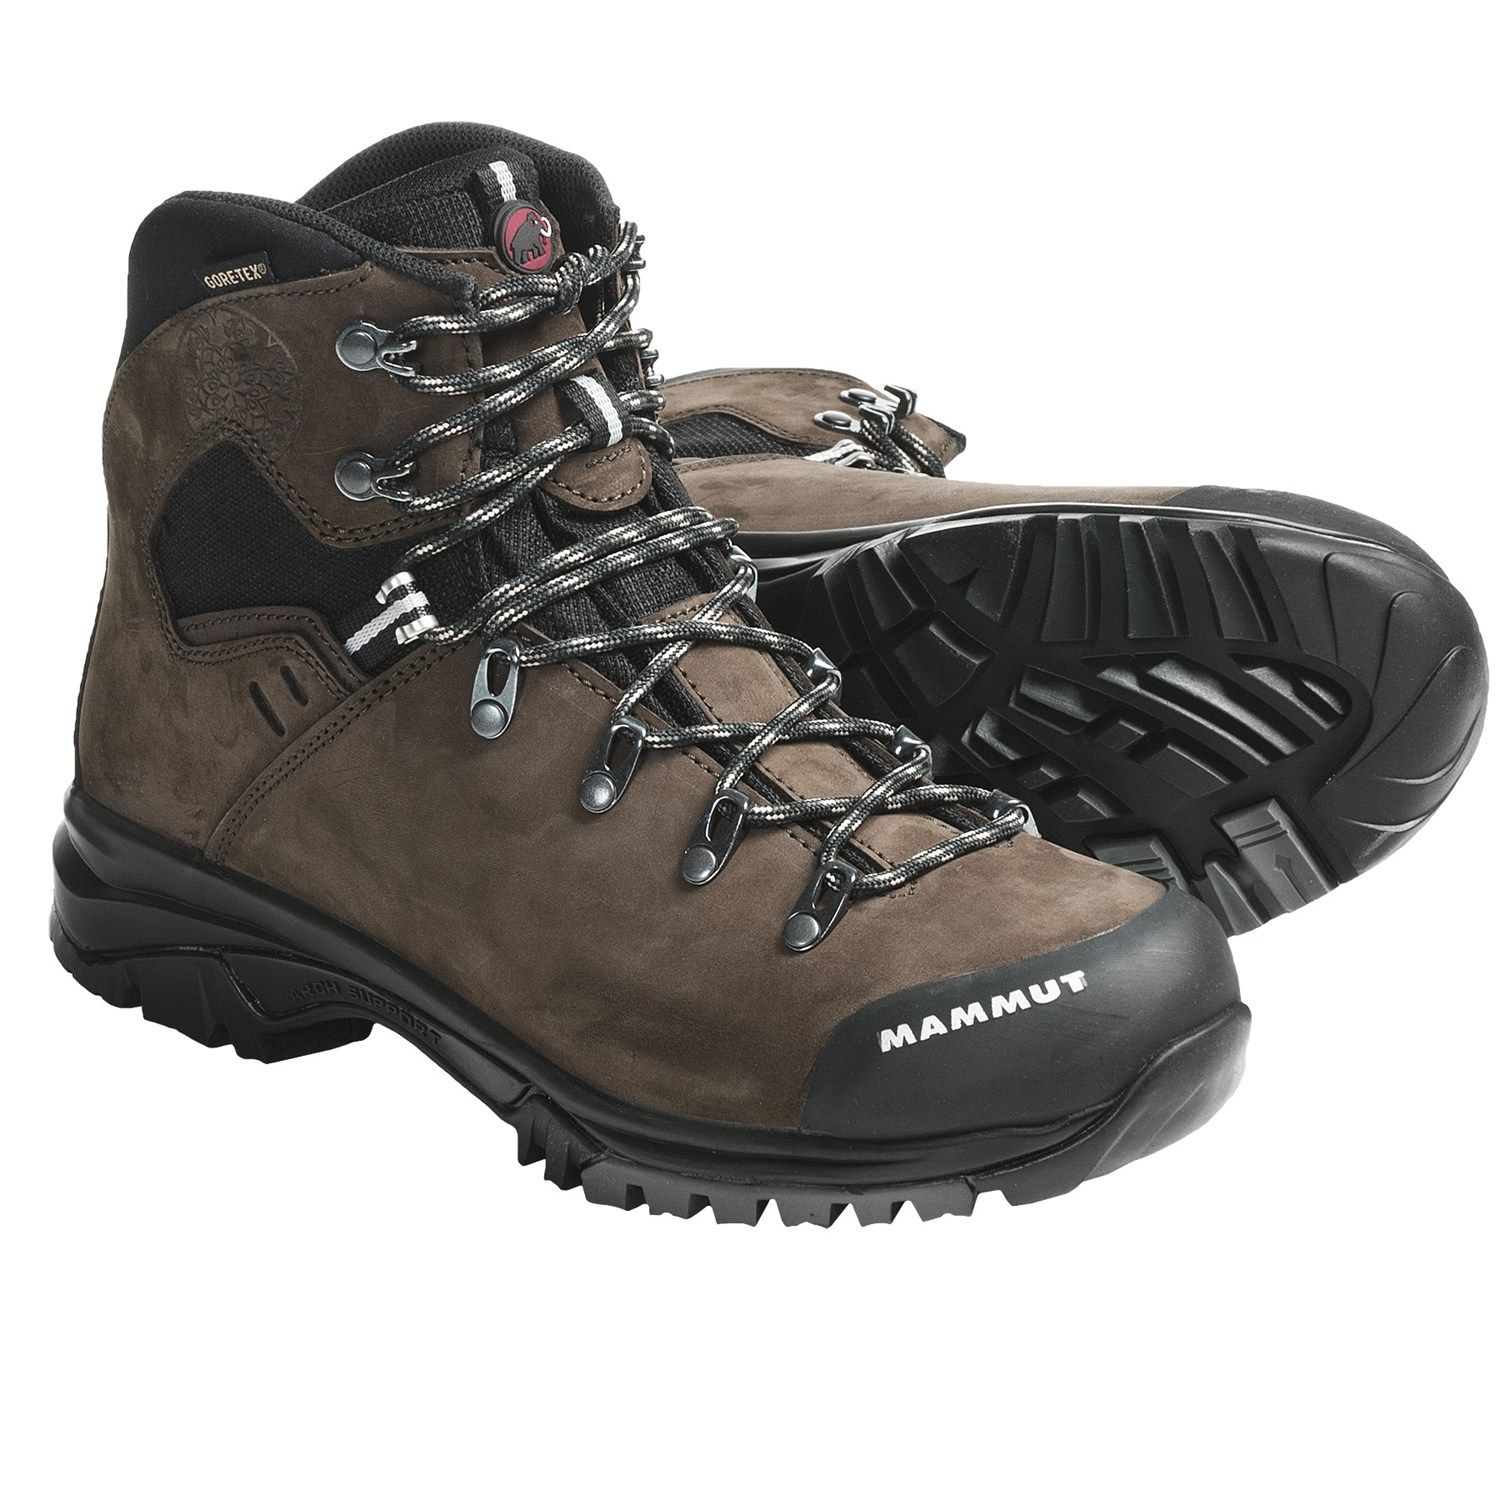 352f99d63e0a Mammut Mt. Vista Gore-Tex® Hiking Boots - Waterproof